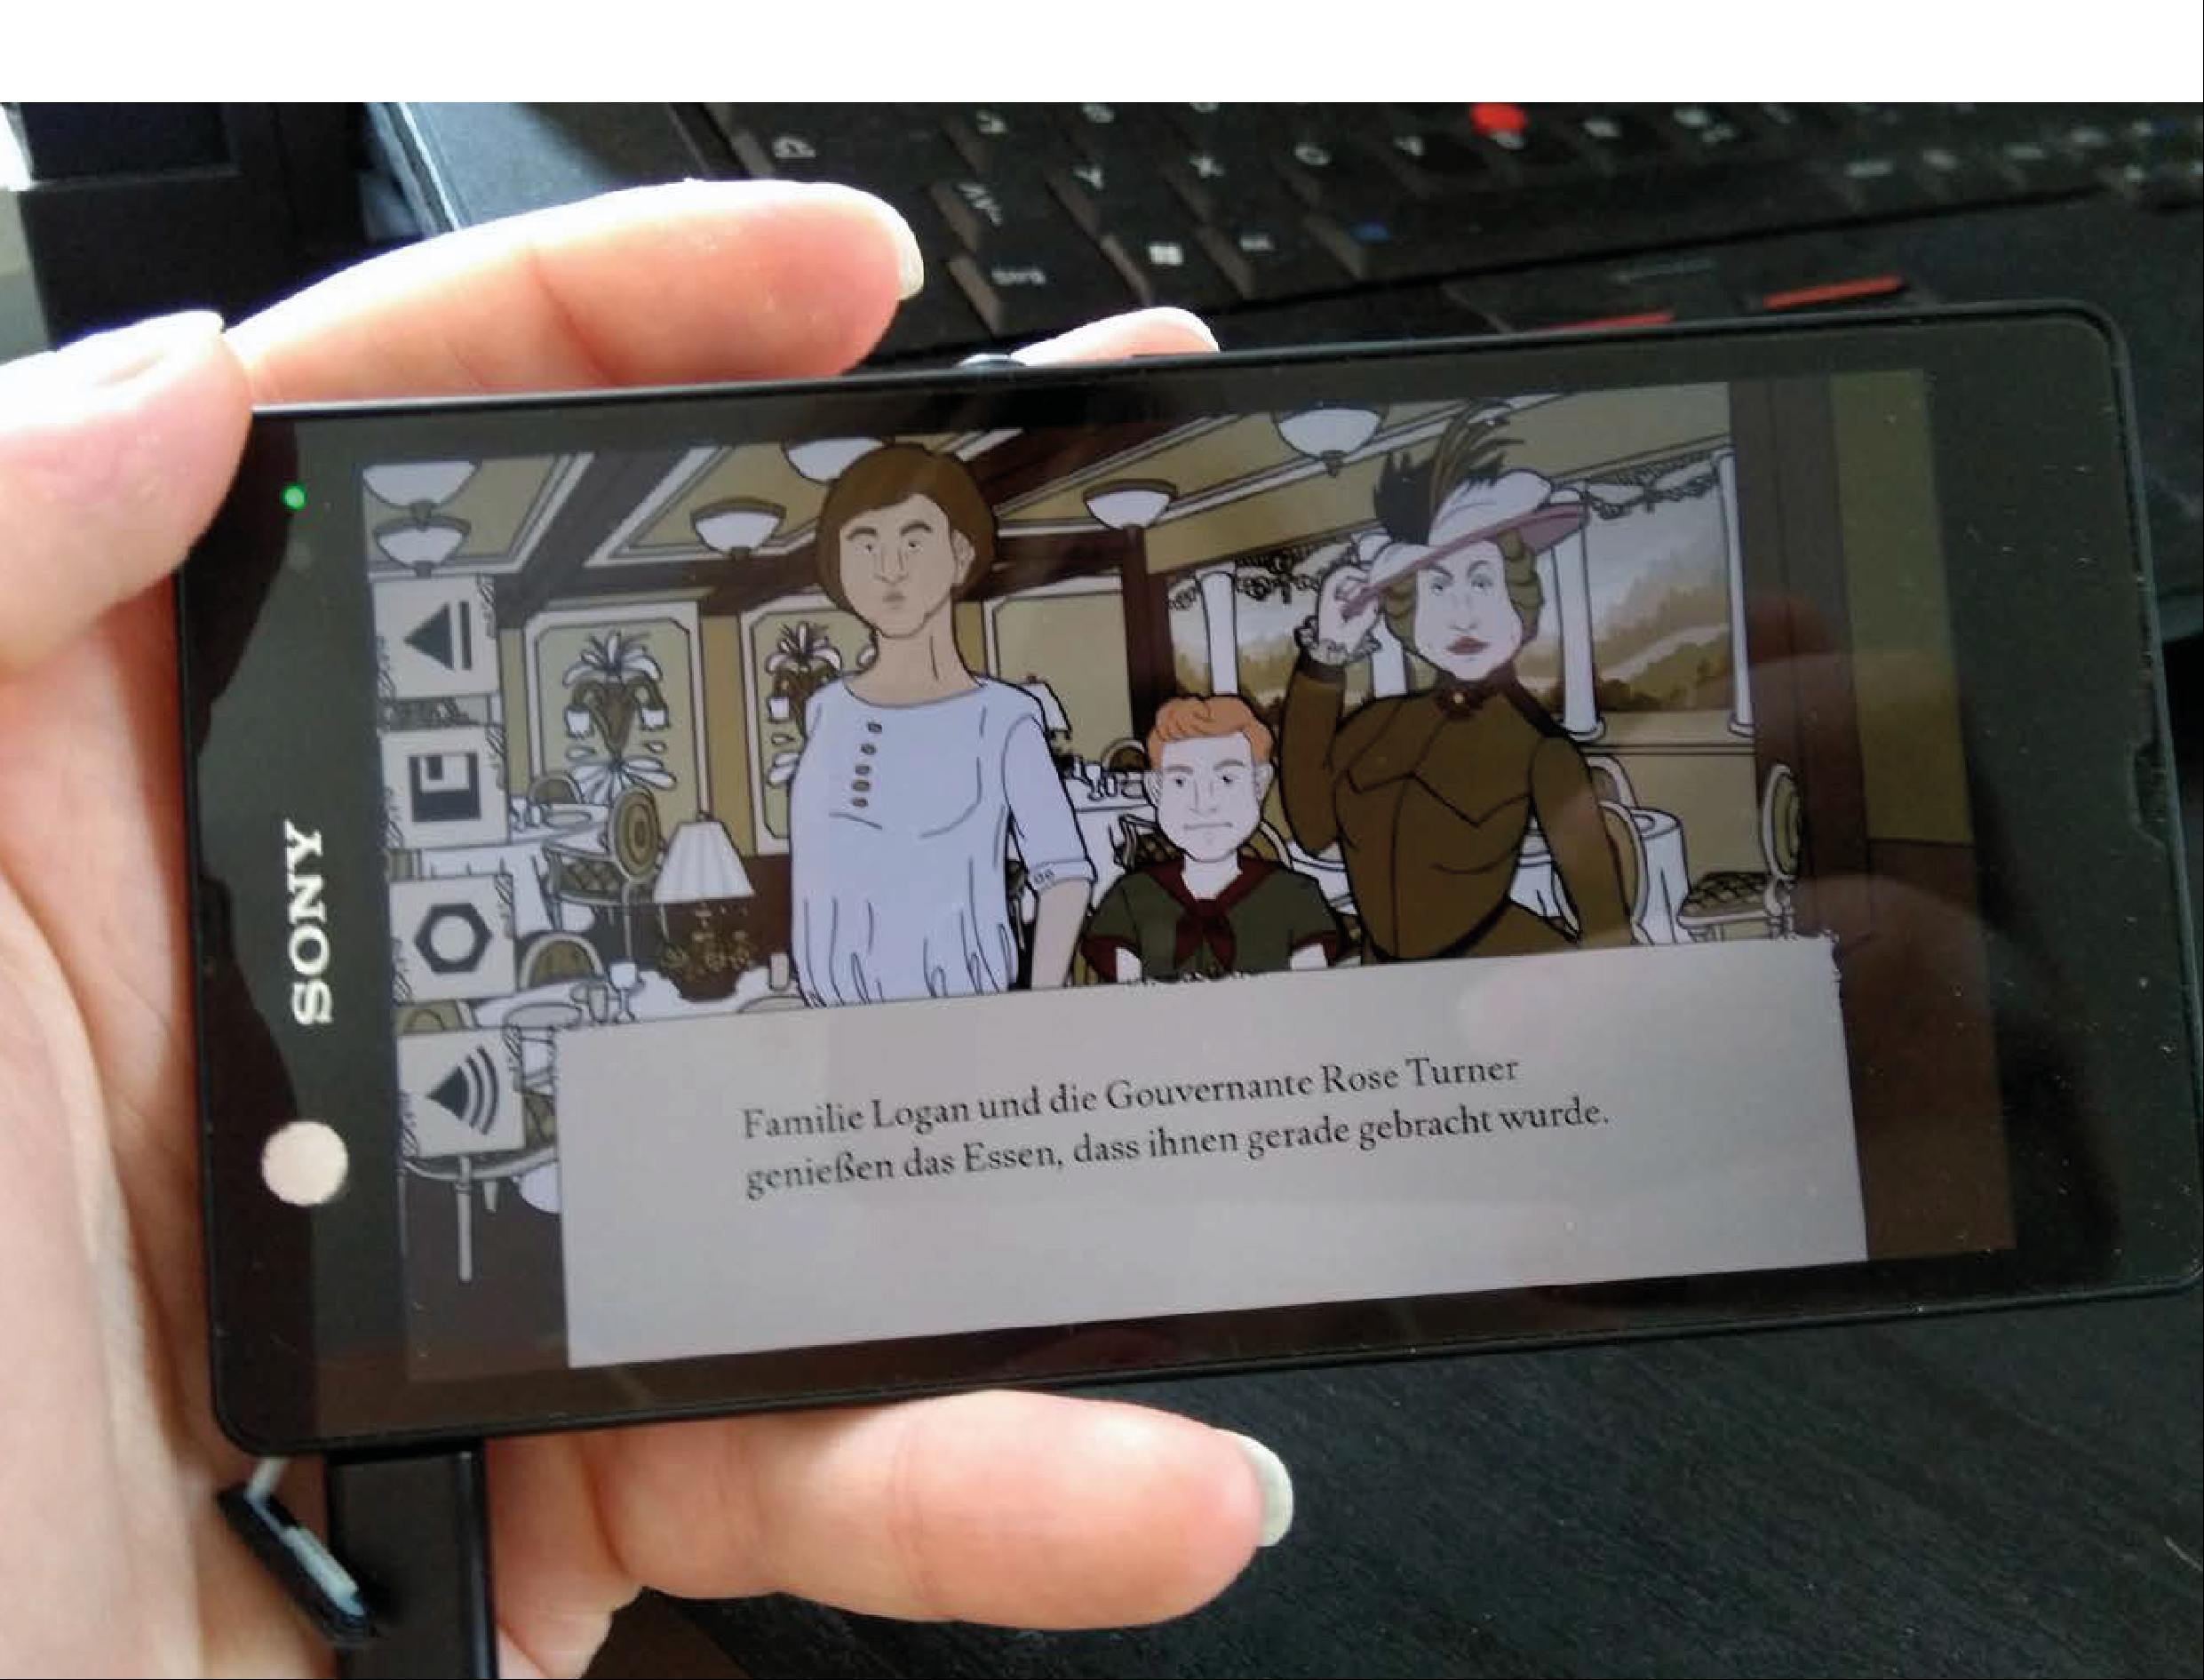 The Venecia Case Visual Novel Mockup Handy App